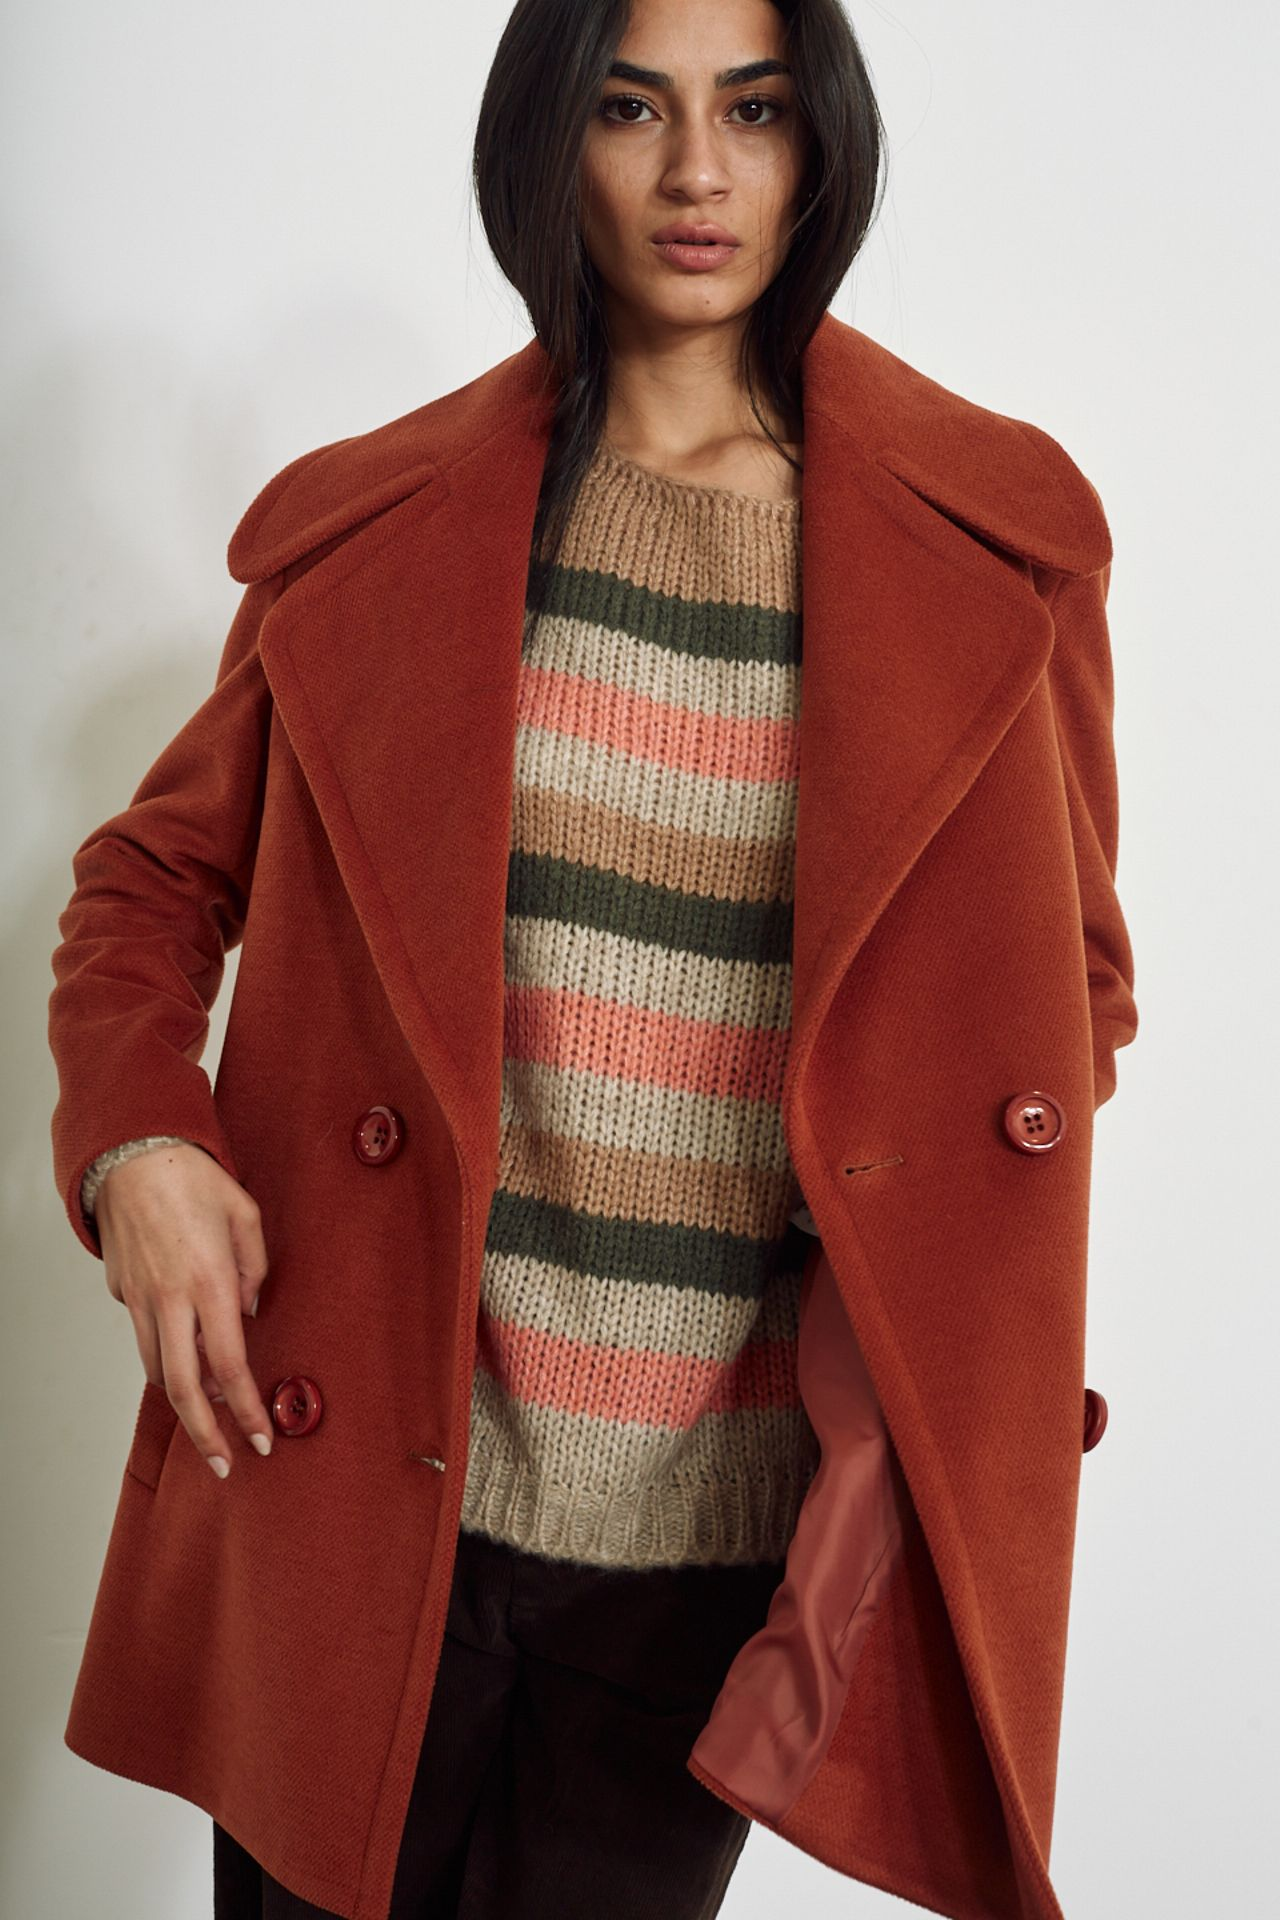 Cappotto con collo over ruggine - Autunno 2020 - Inverno 2021 | Brend